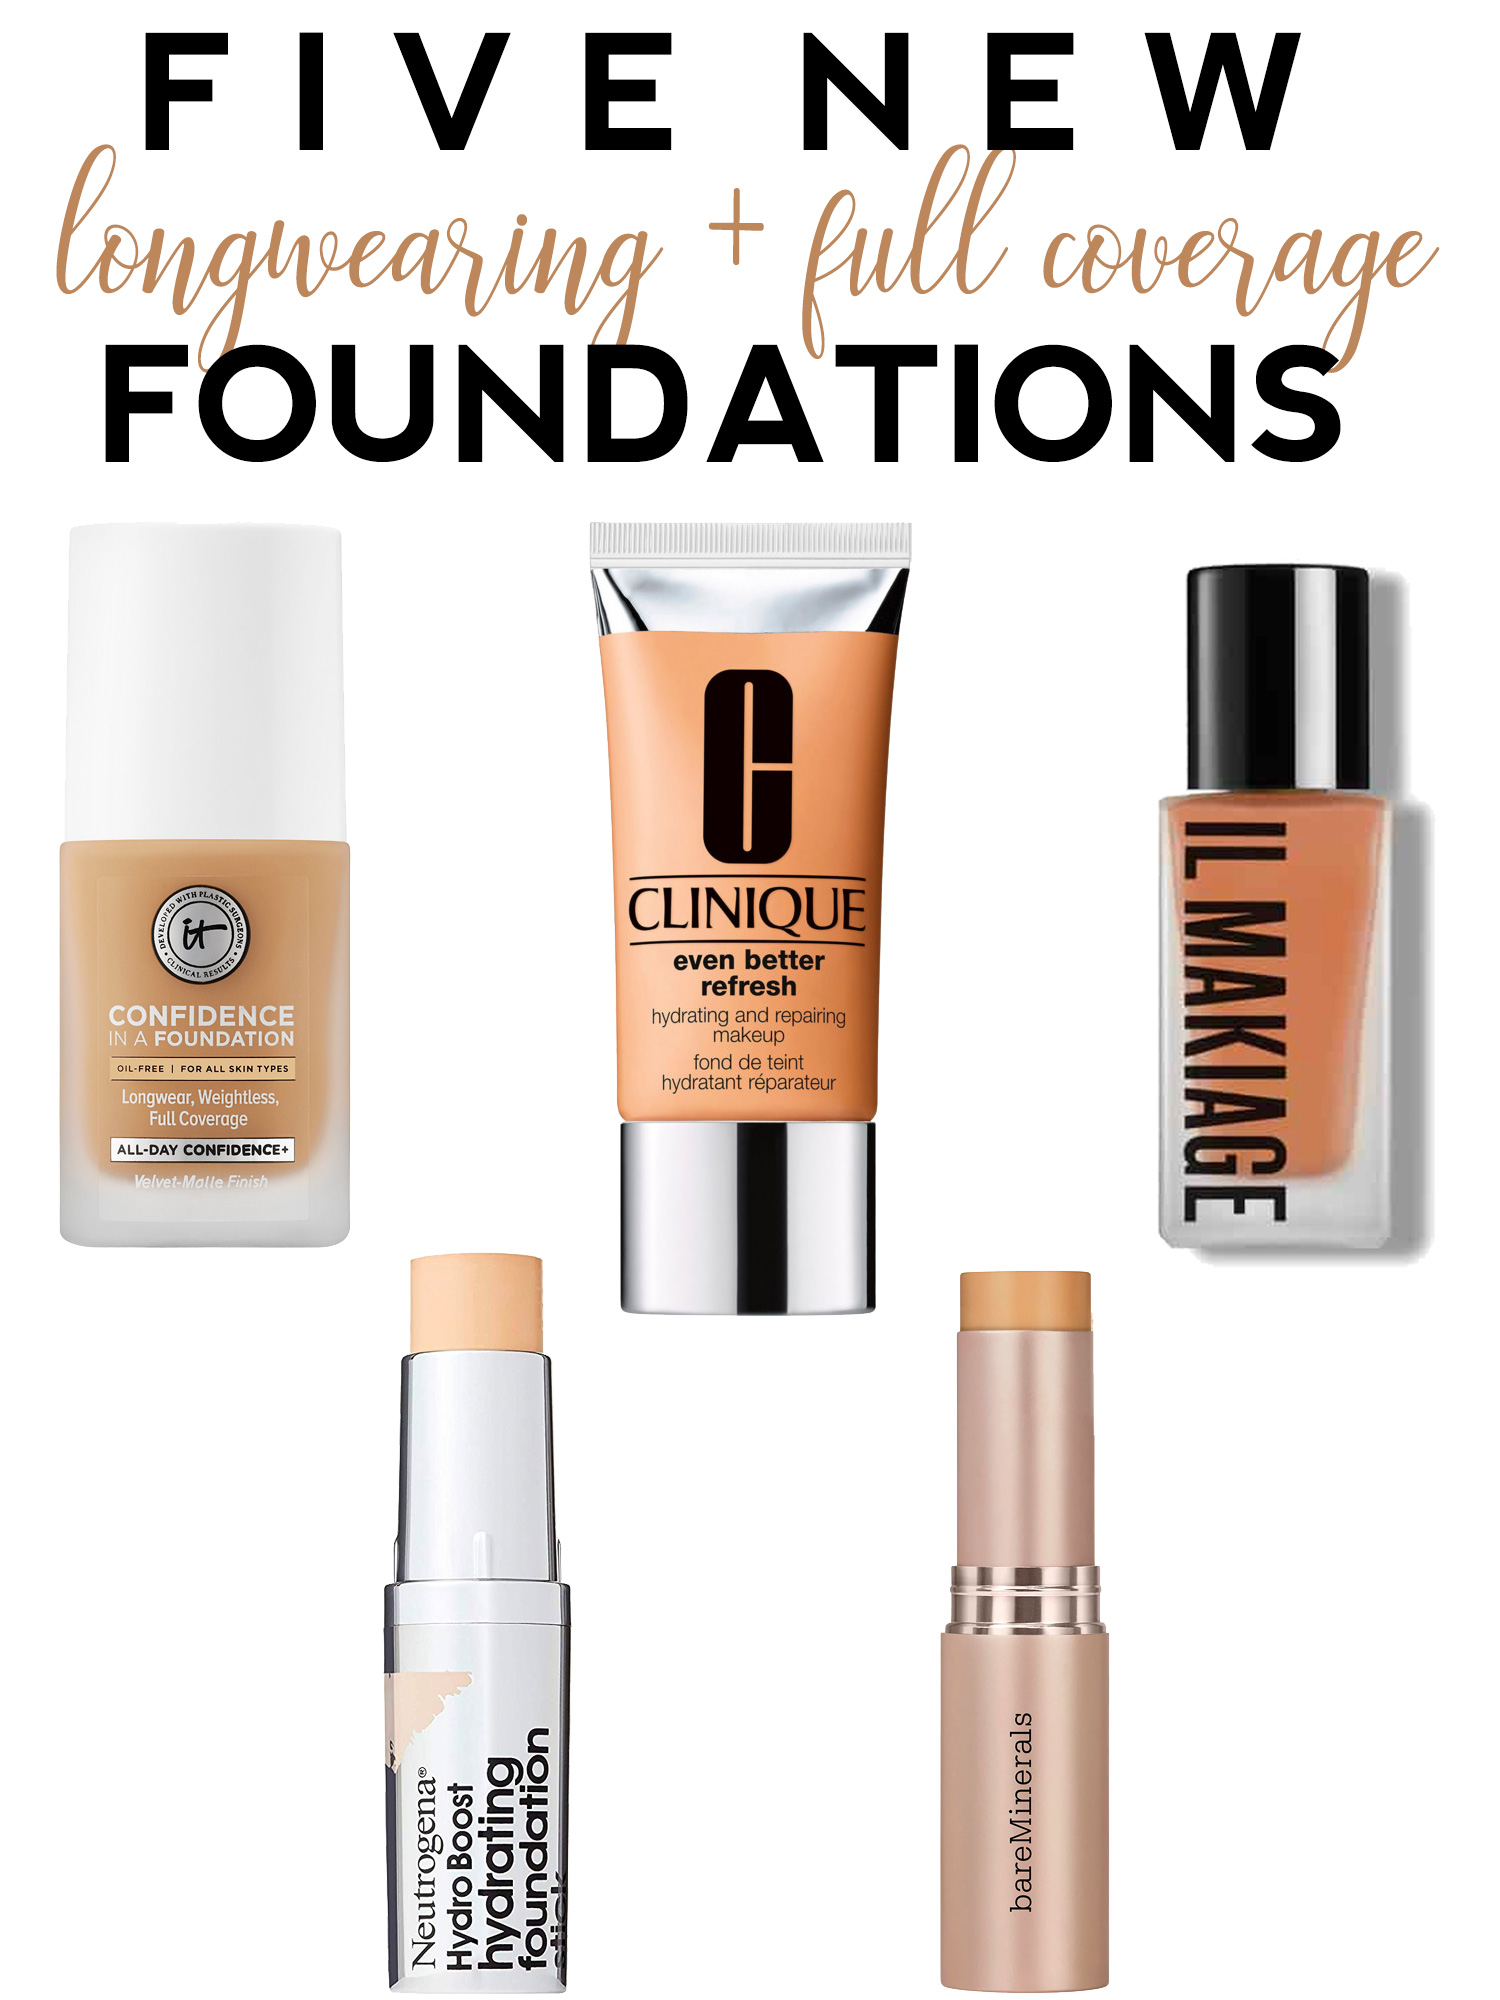 5 New Long Wearing & Full Coverage Foundations